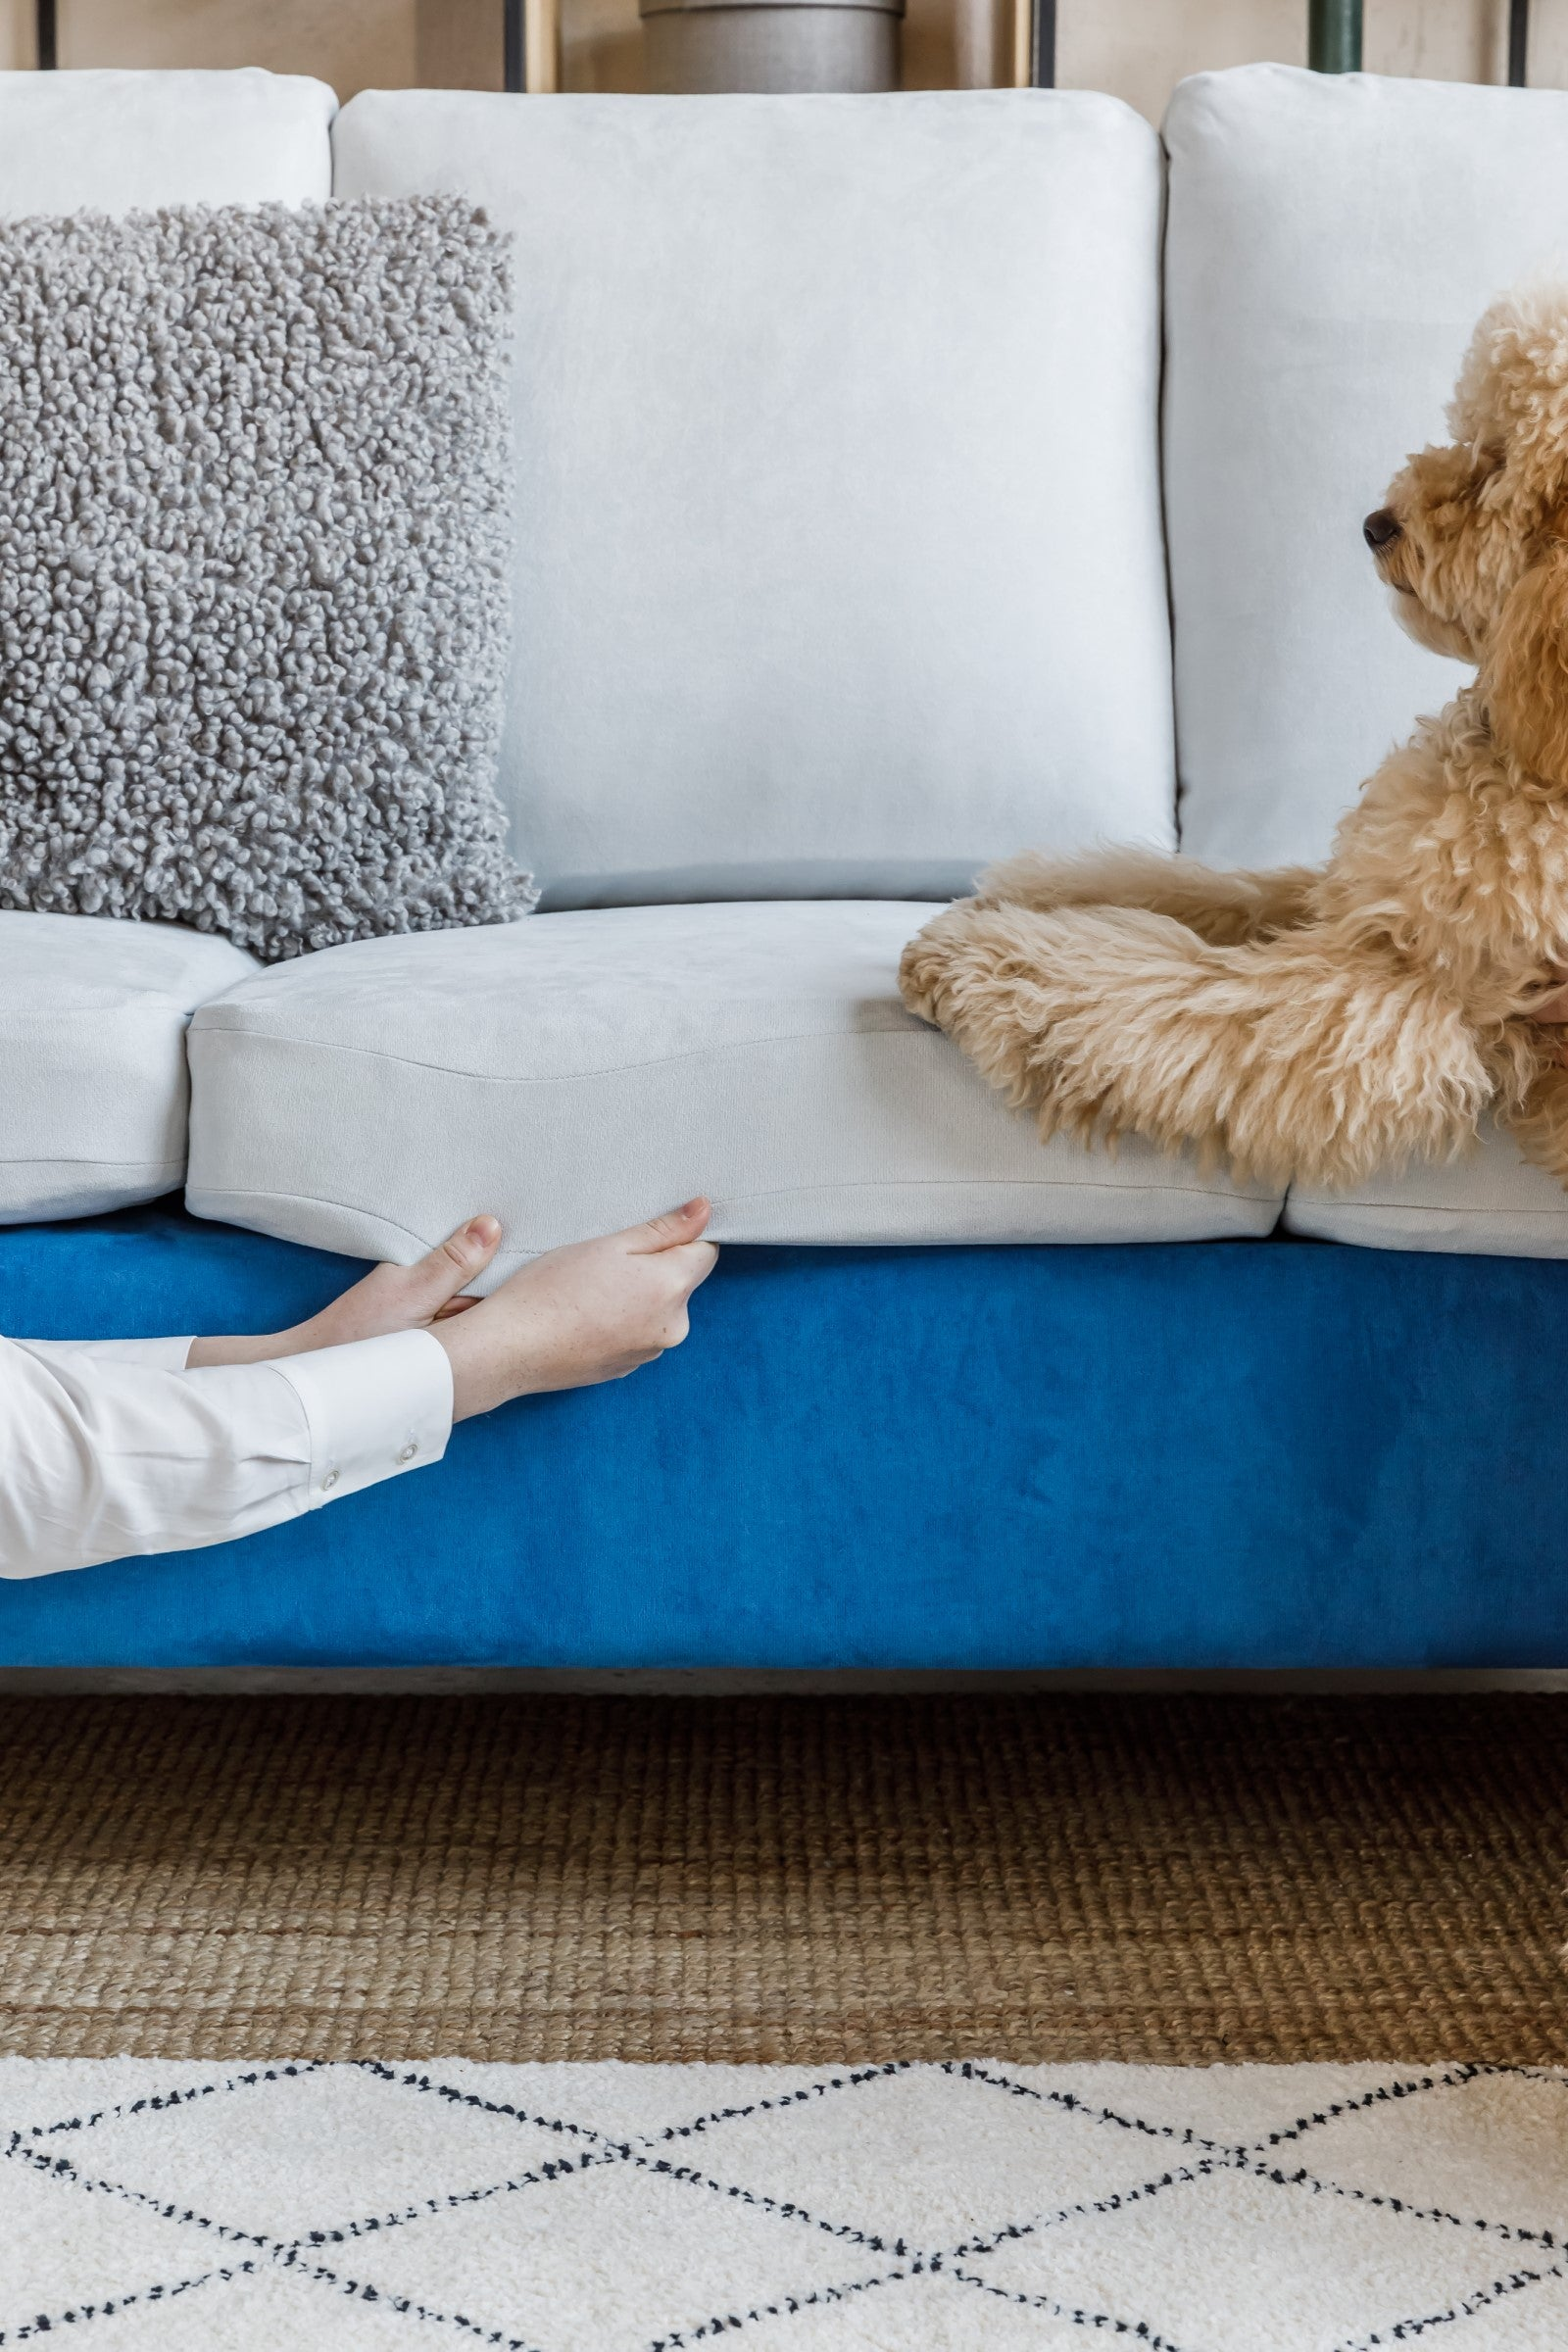 No More Smells and Scratching - Slipcover Care Guide for Pet Owners